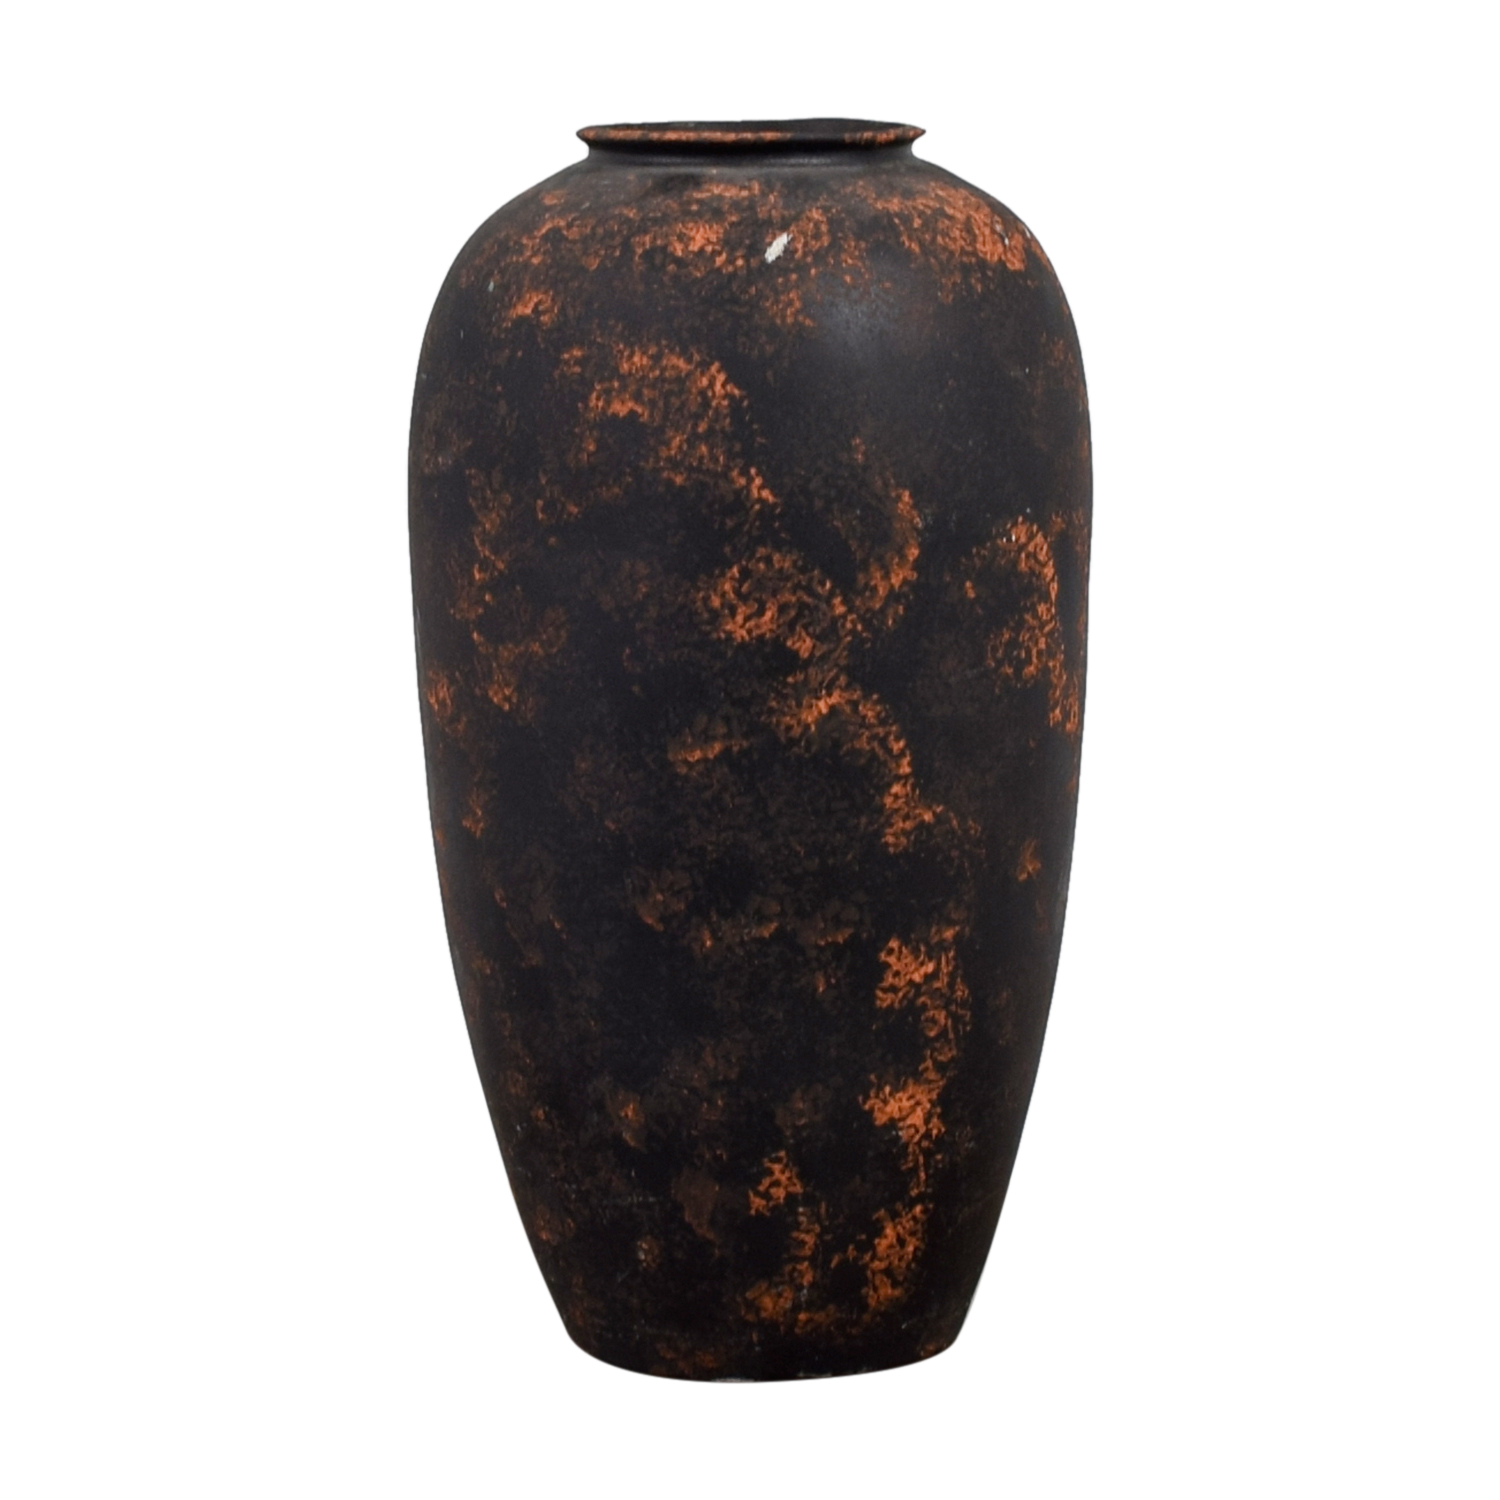 Vanguard Accents Tall Ceramic Vase / Decorative Accents